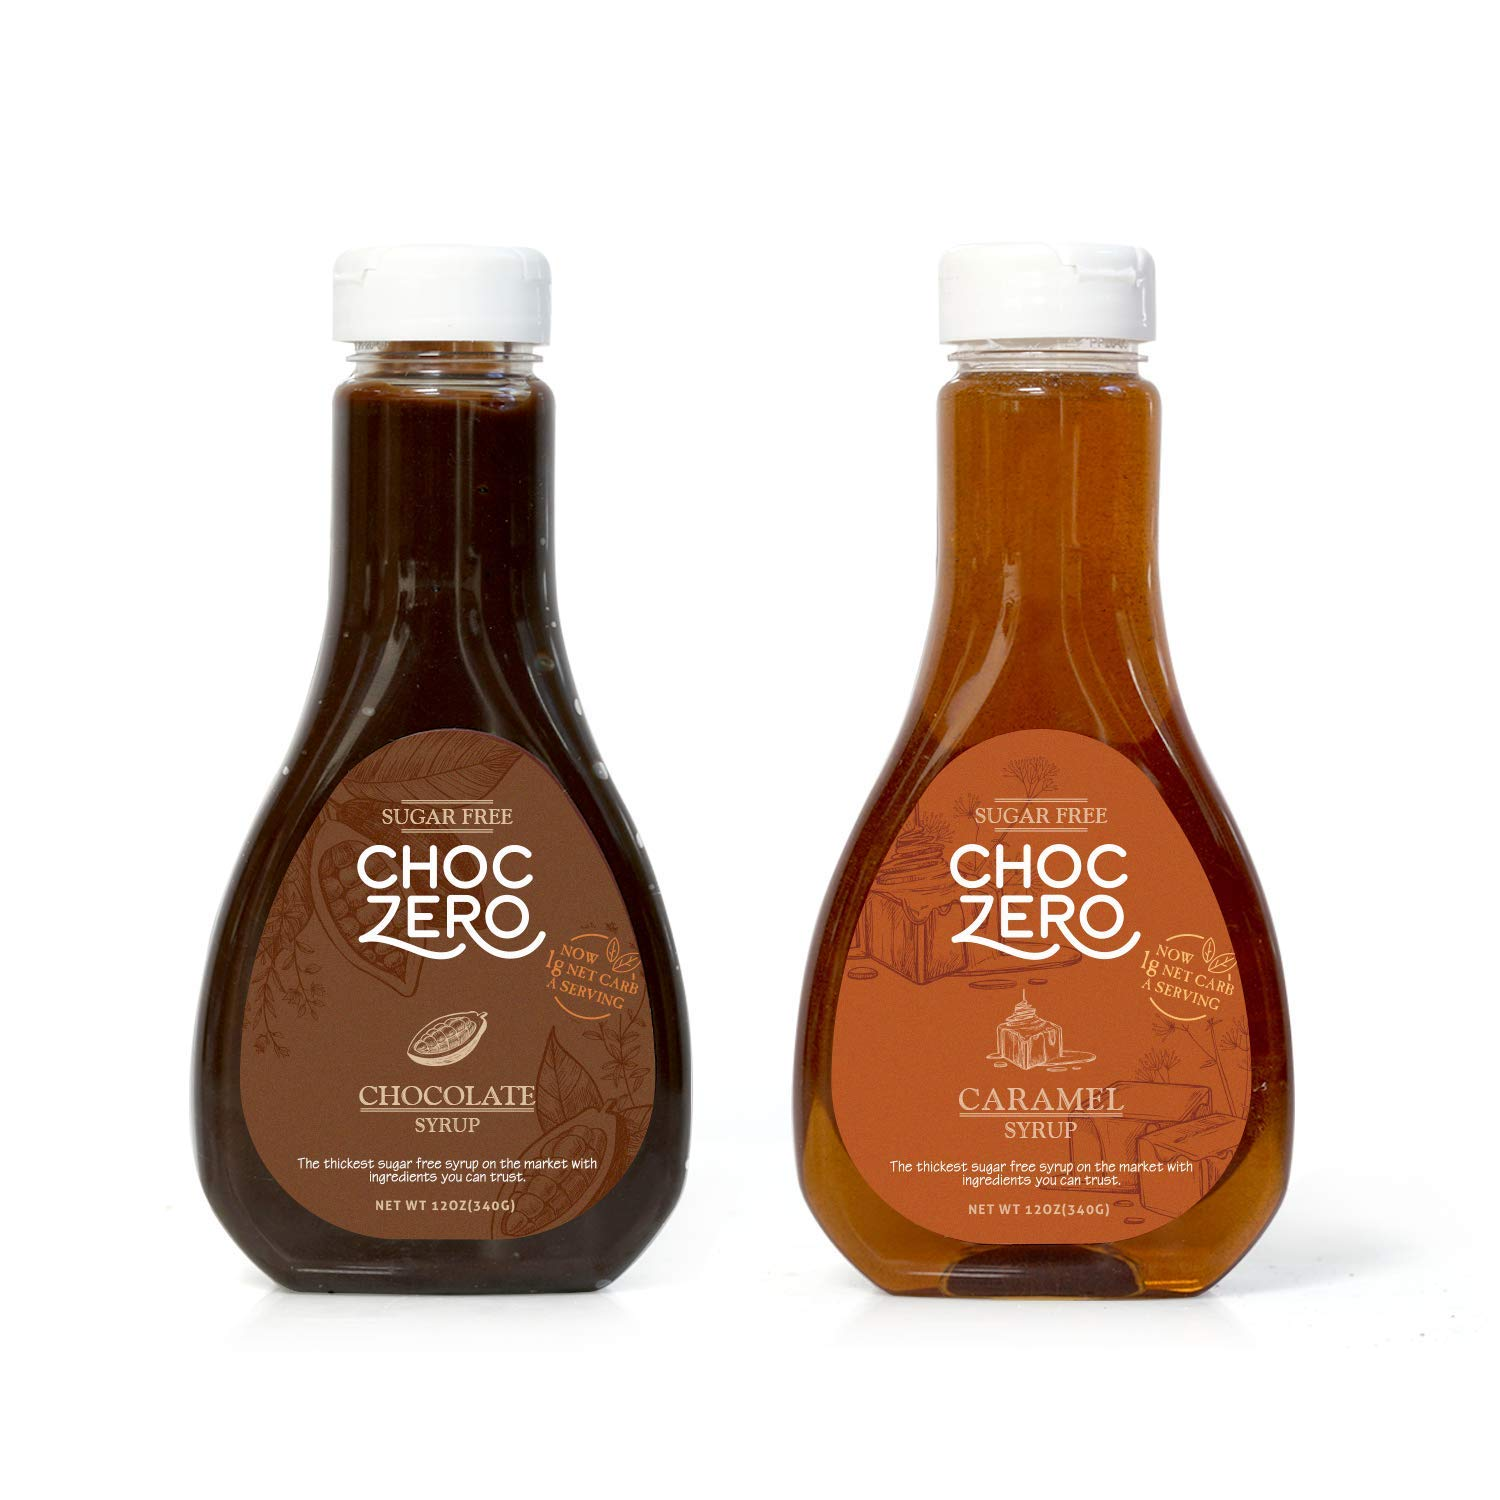 ChocZero's Chocolate and Caramel Syrup. Sugar Free, Low Net Carb, No Preservatives. Gluten Free. No Sugar Alcohols. Great for waffles and pancakes (2 bottles) by ChocZero